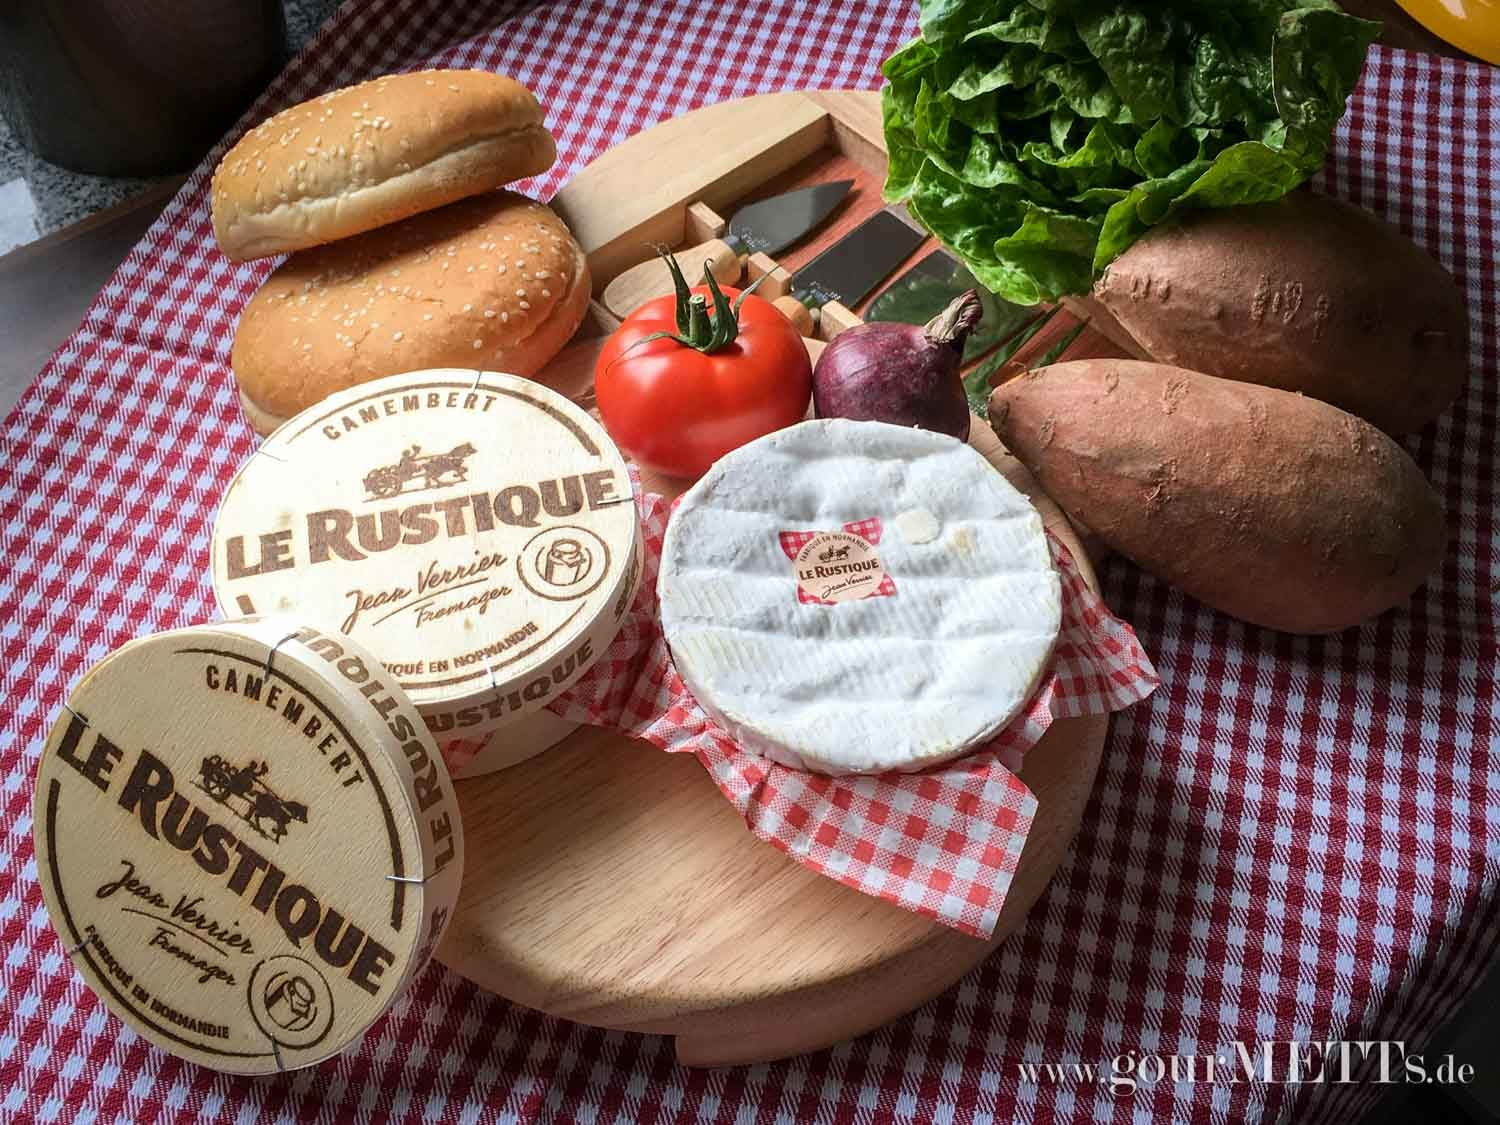 gourmetts-burger-camembert-lerustique-_web01